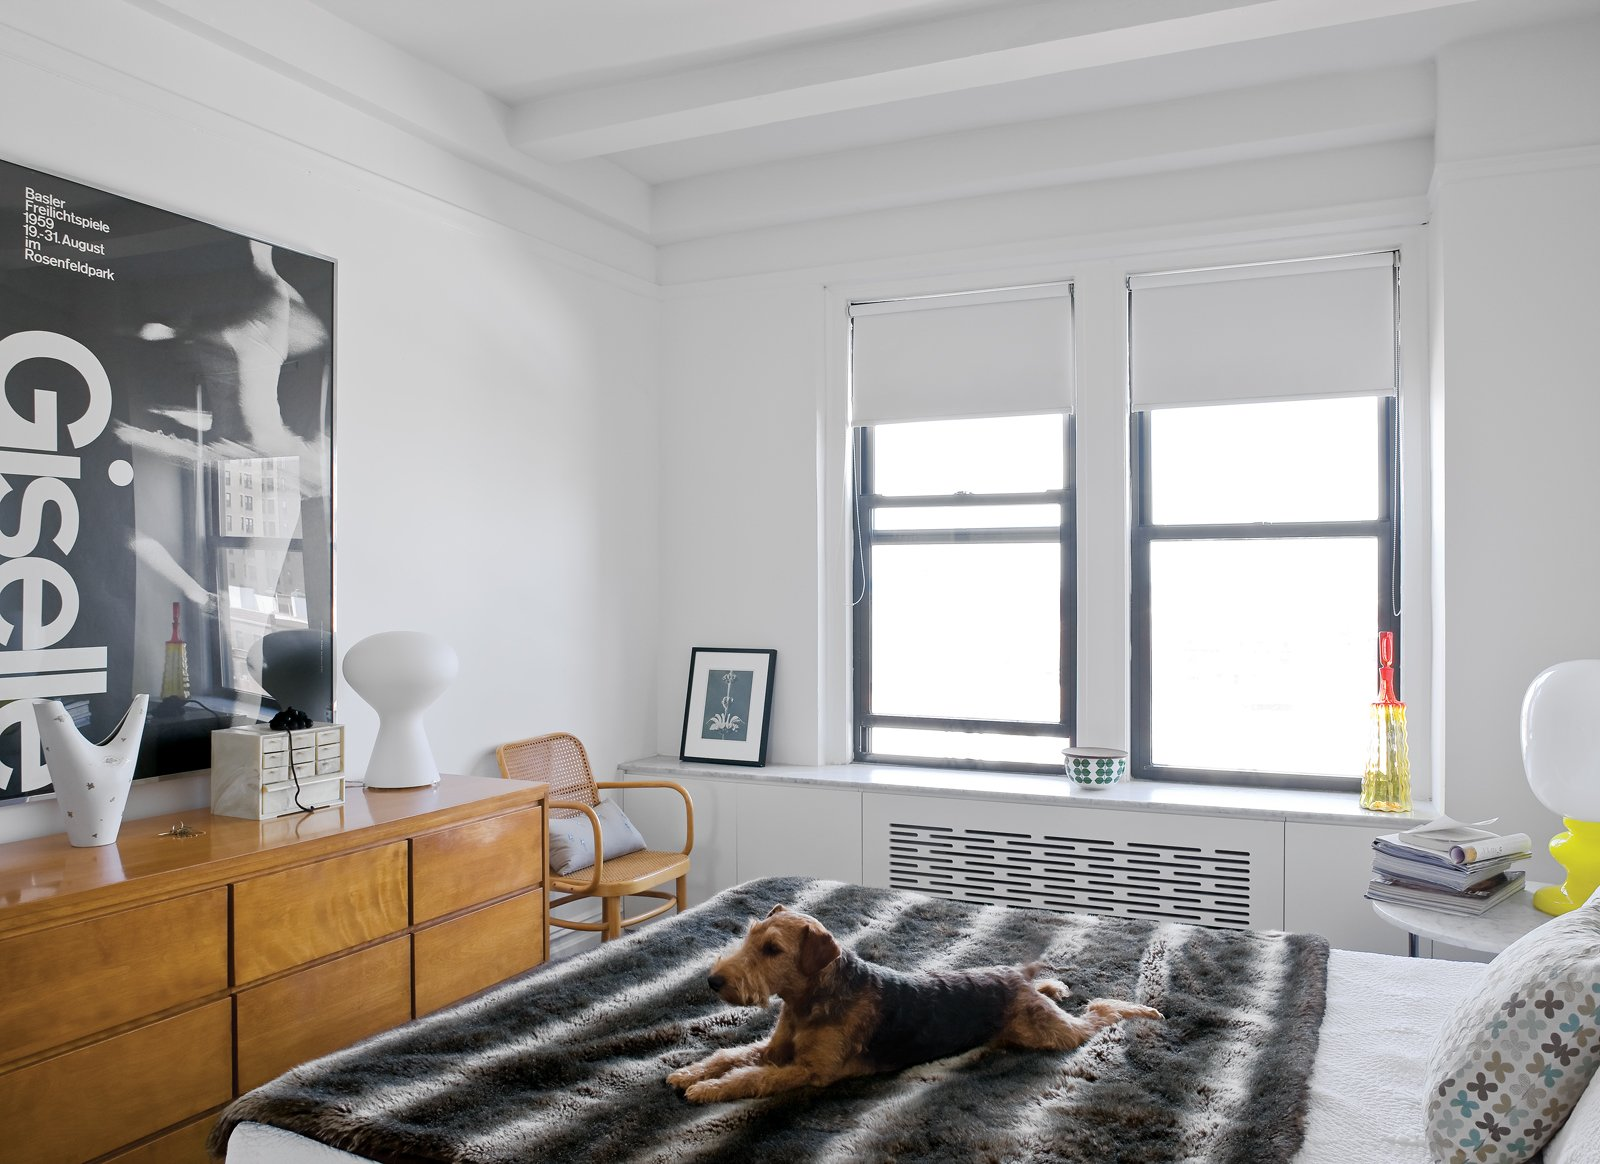 Bedroom, Bed, and Dresser Beneath the windows in the living room and the bedroom is the clever built-in radiator screen/storage system designed by Joshua Pulver and Mike. The bedroom dresser is vintage Russel Wright.  Inside 7 Modern Renovations in Brooklyn by Aileen Kwun